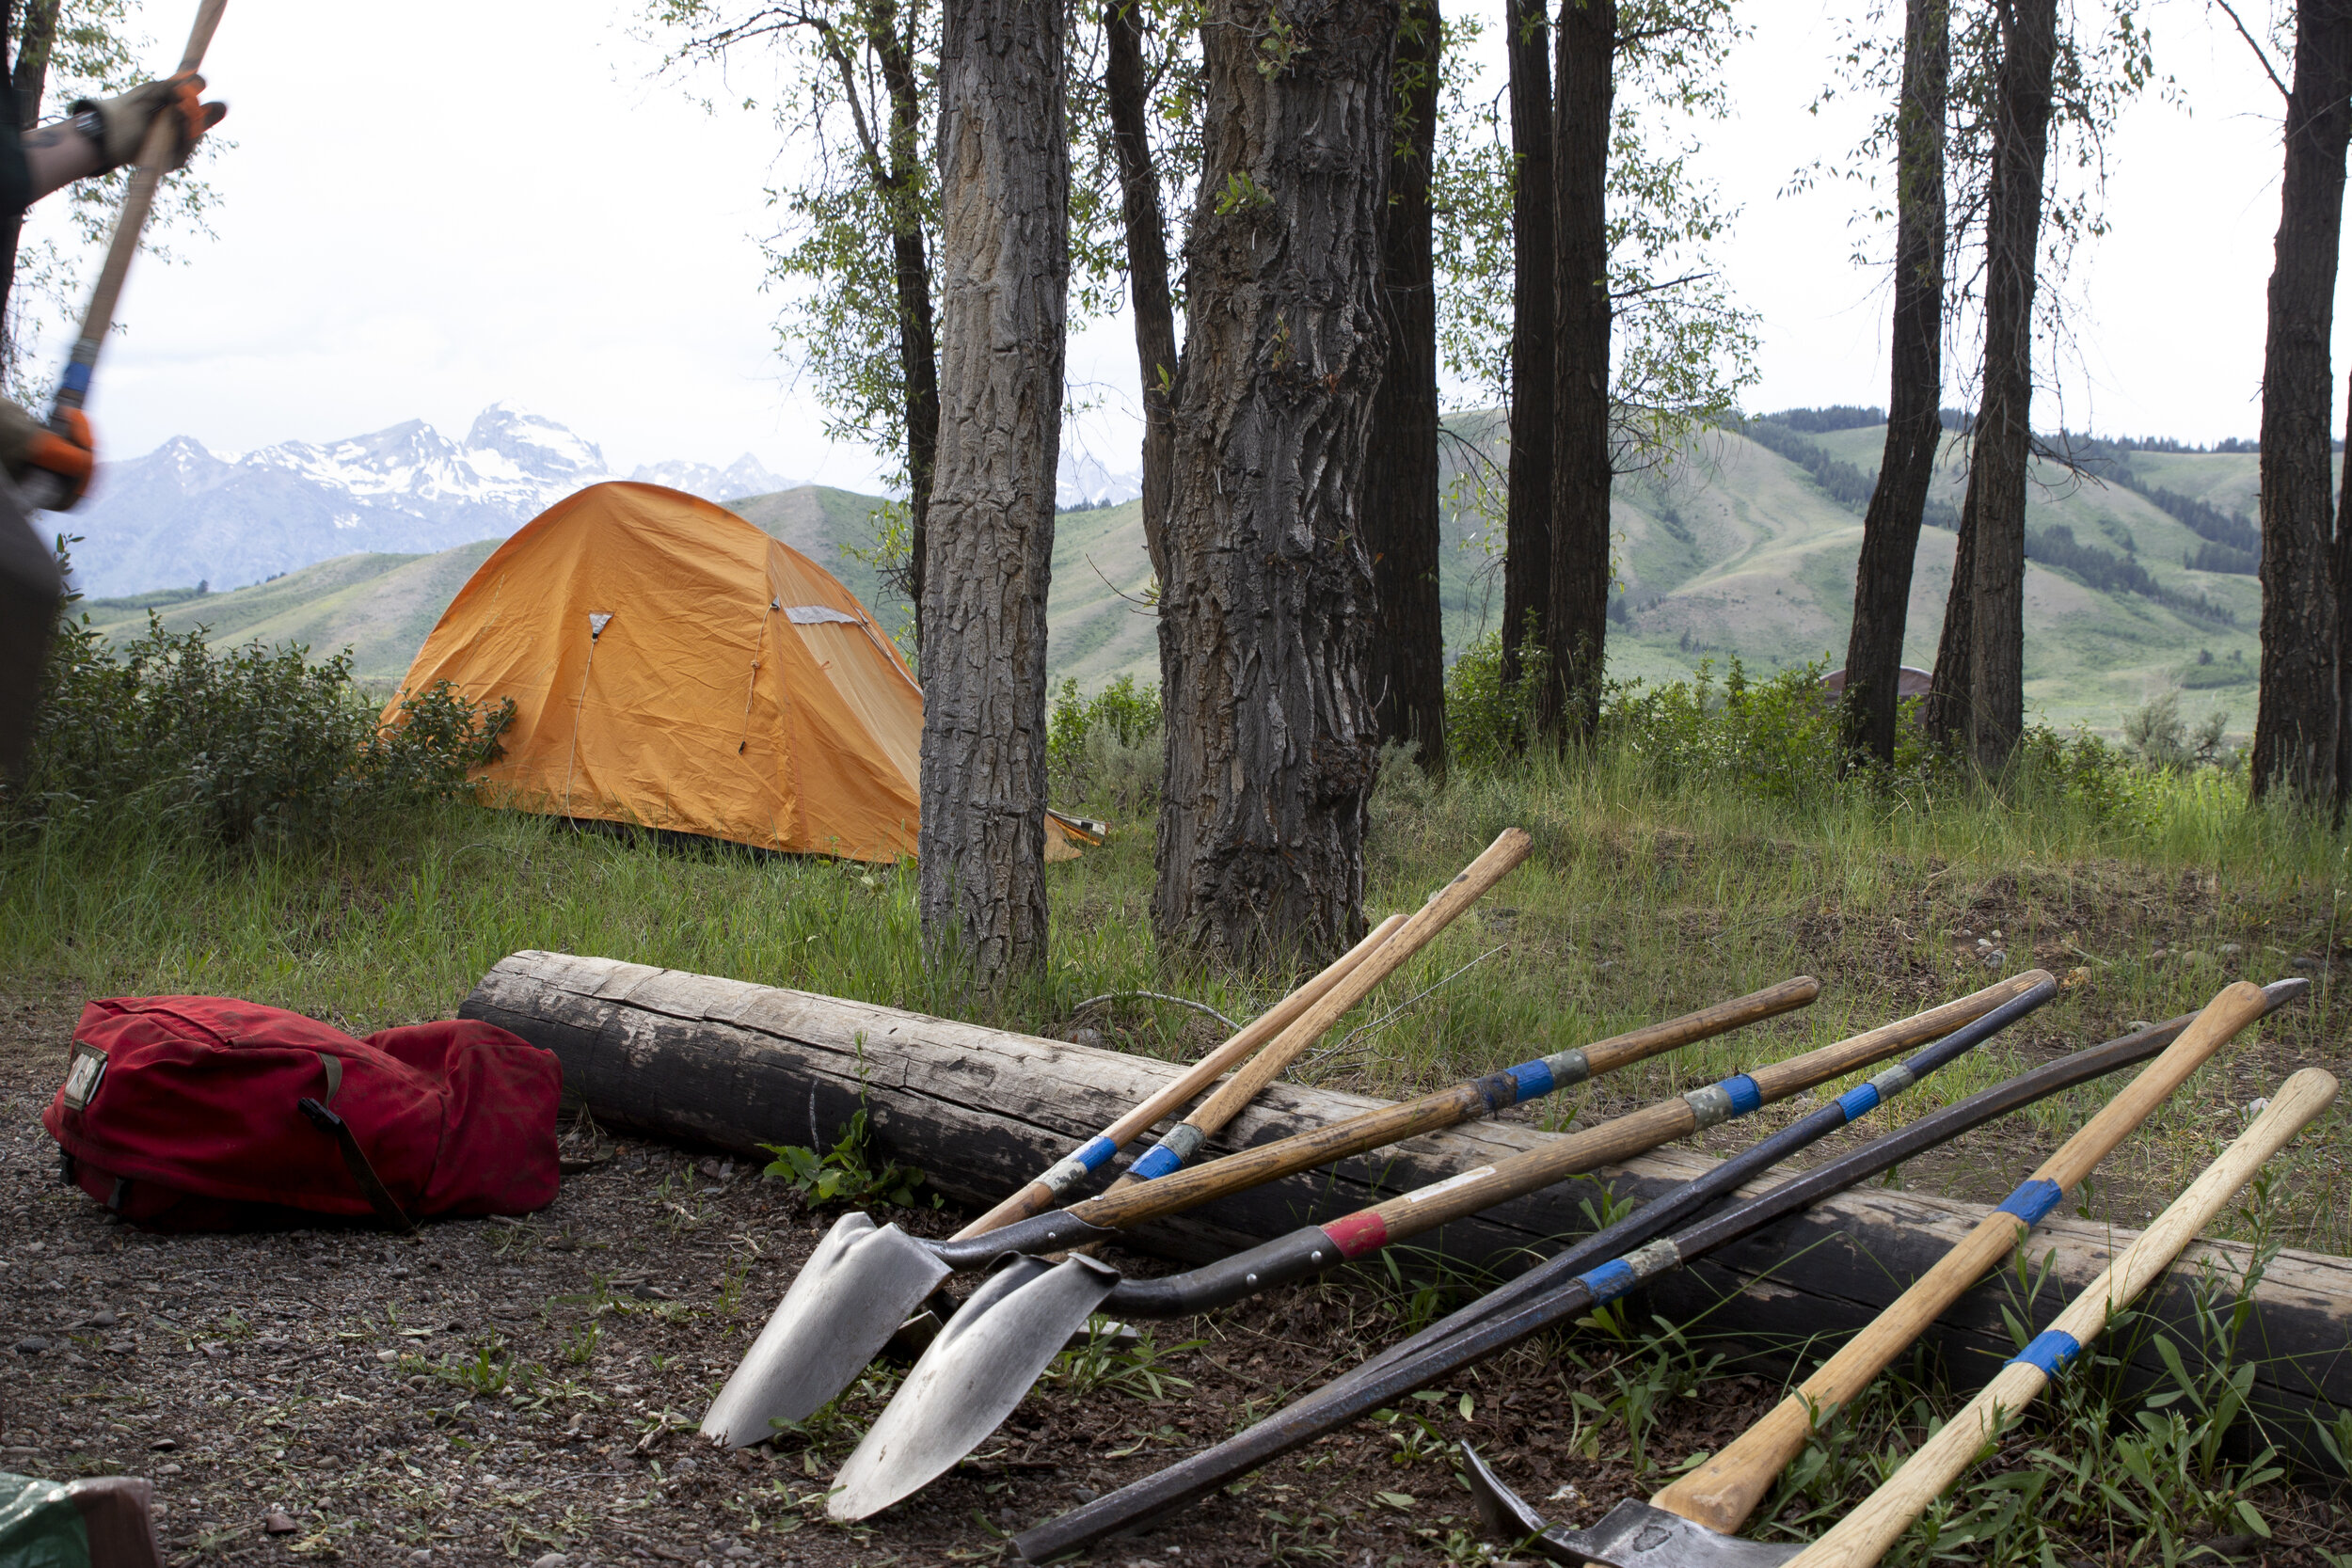 Attendees camp amidst the beauty of Grand Teton National Park